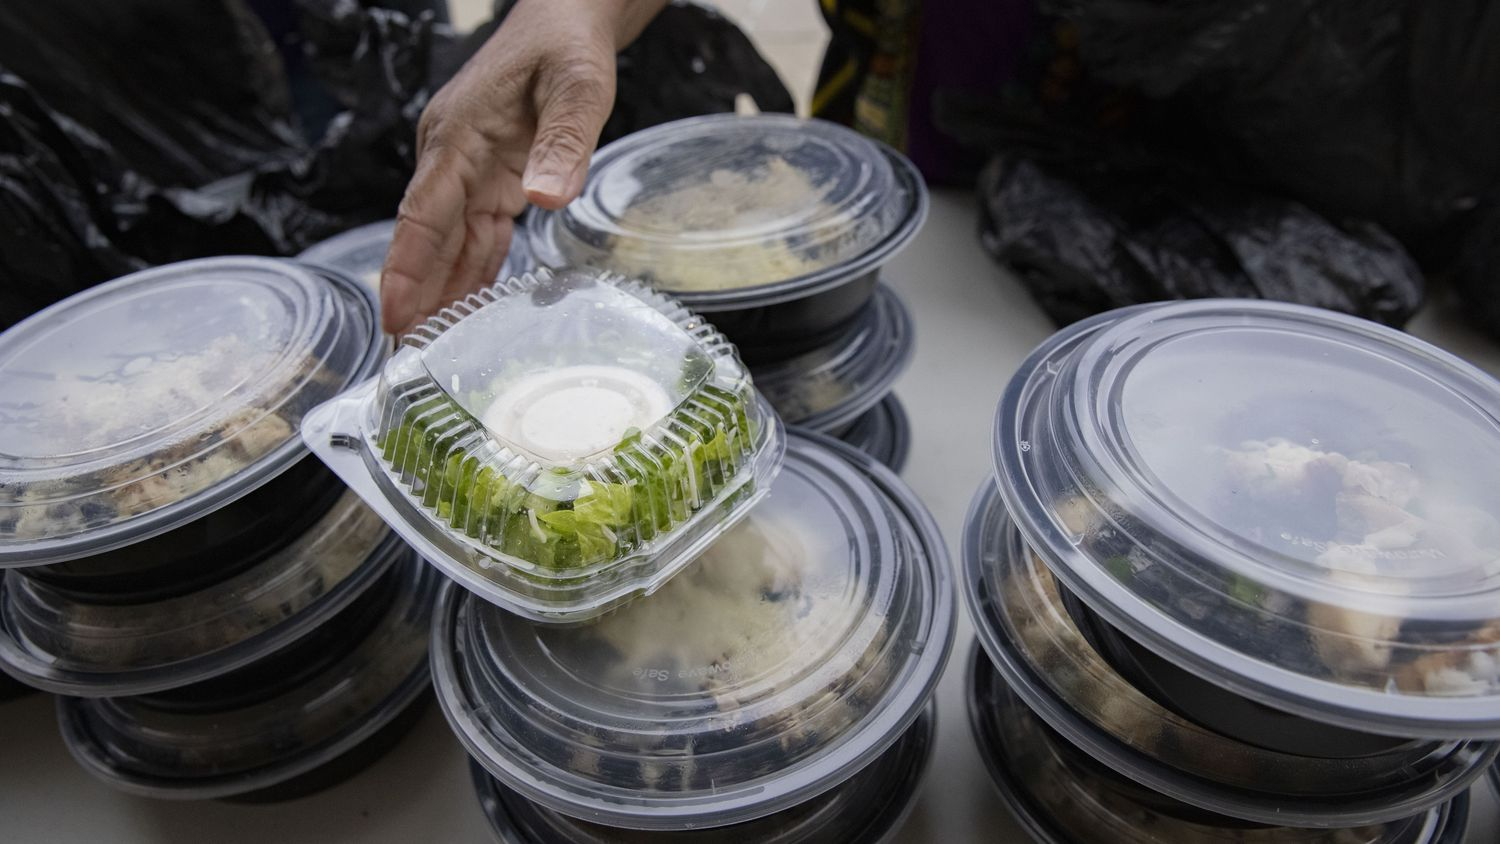 DFW's Hindu community has provided 5,000 meals, including pizzas and sandwiches, to people without food and water in Dallas.